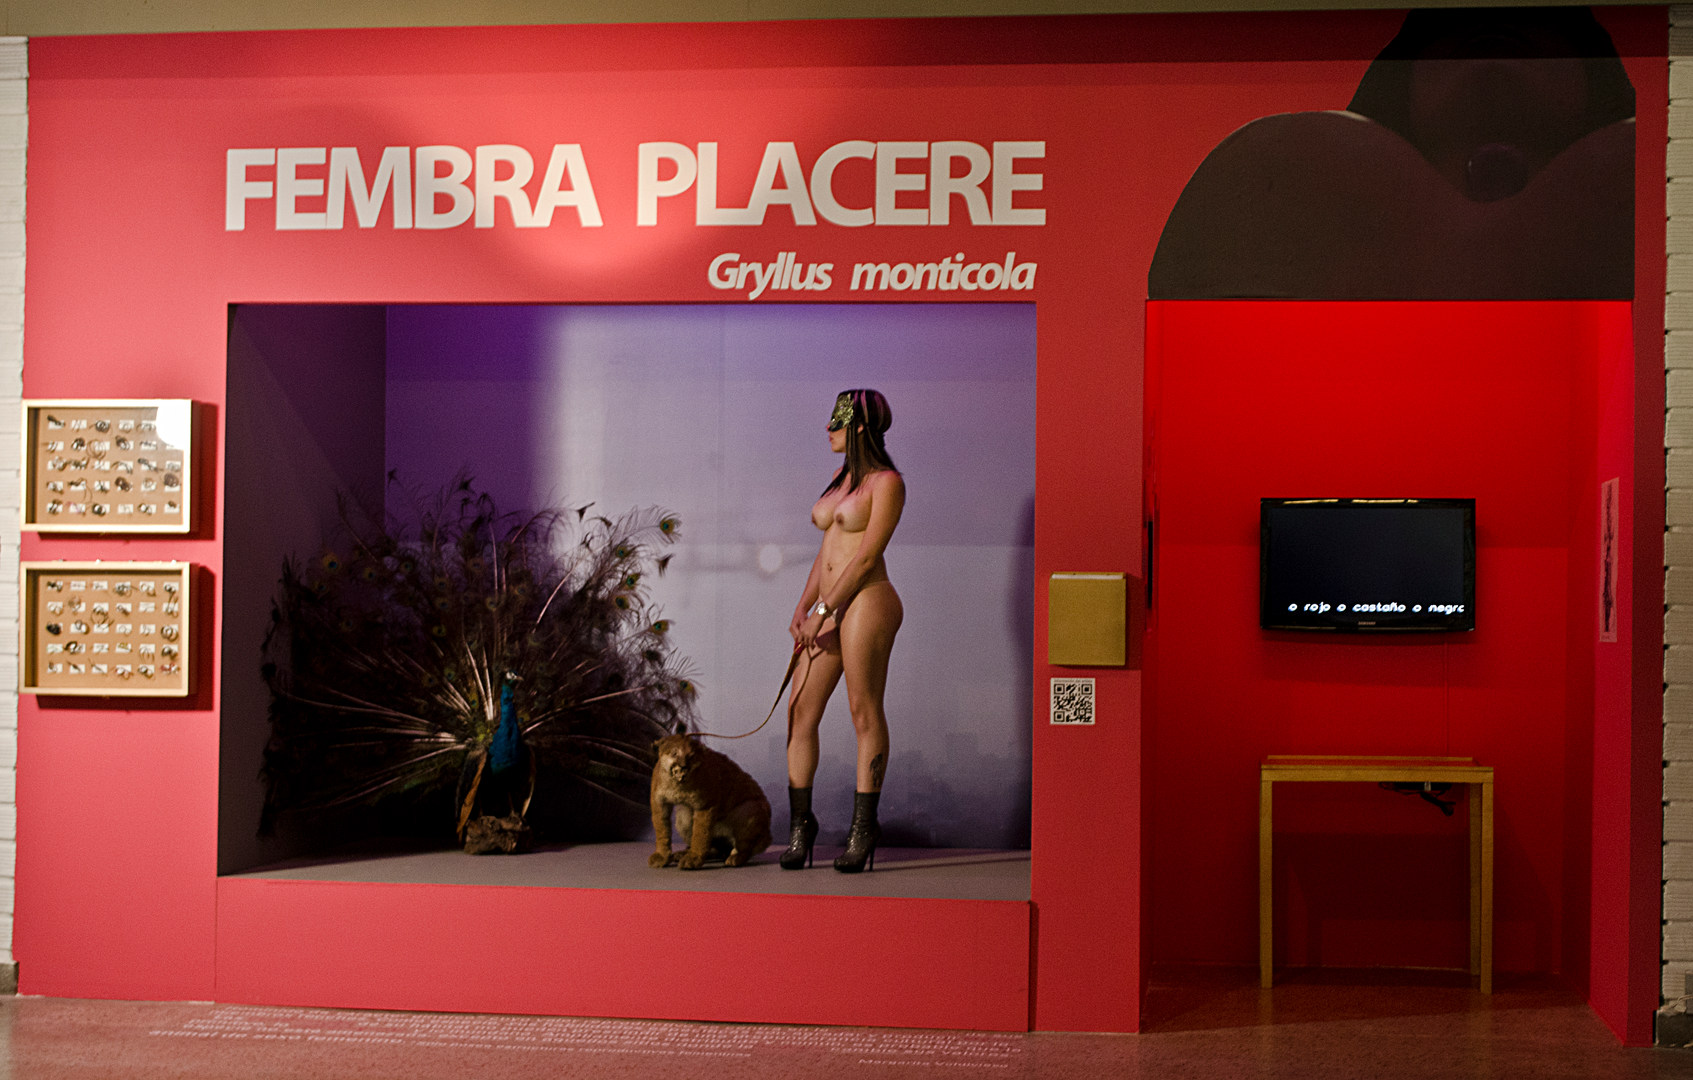 Performance at the opening night of Fembra Placere